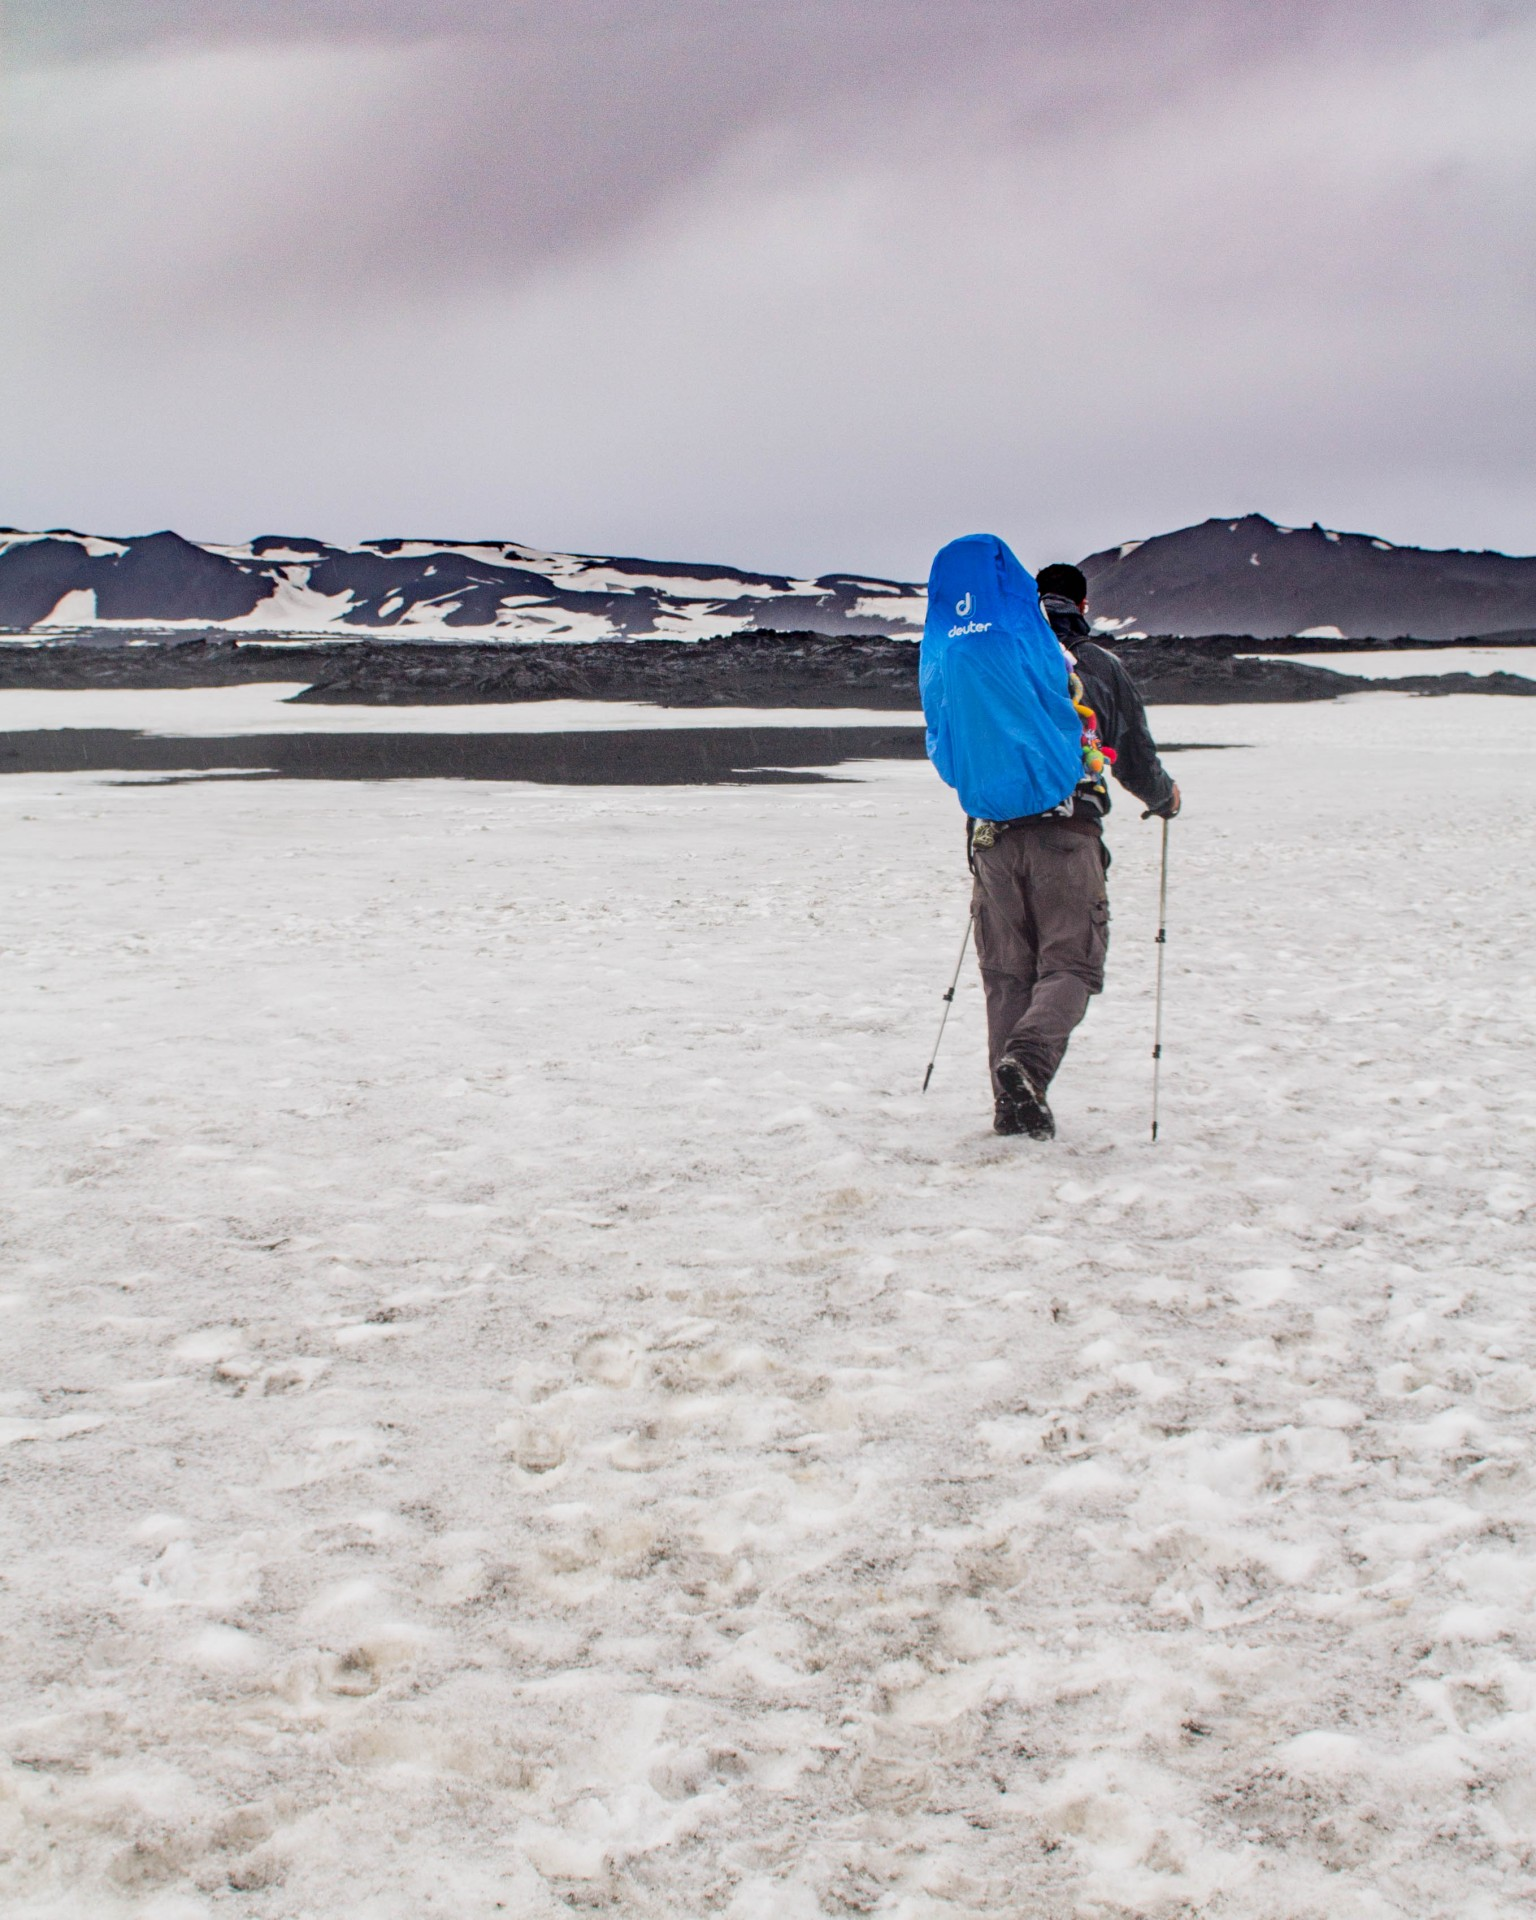 Man hiking through snow with a child in a kid in a Deuter Kid Comfort III Kid Carrier with a blue rain cover